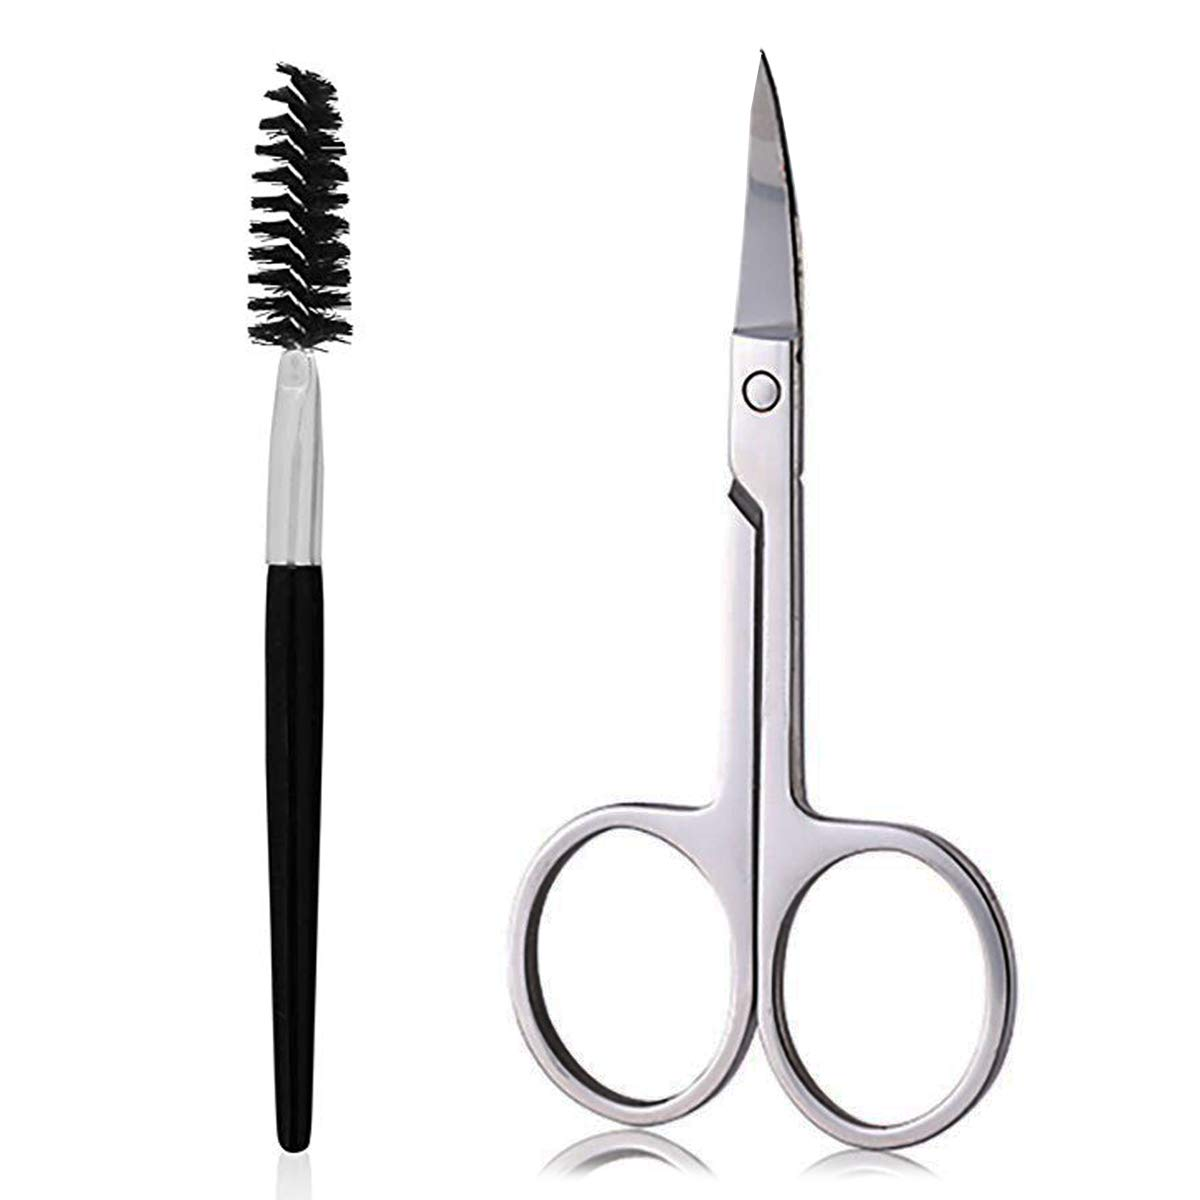 Eyebrow Scissors and Eyebrow Brush by AUMELO - Eyelash Extensions Shaping Curved Craft Stainless Steel Scissors for Your Beauty: Home Improvement